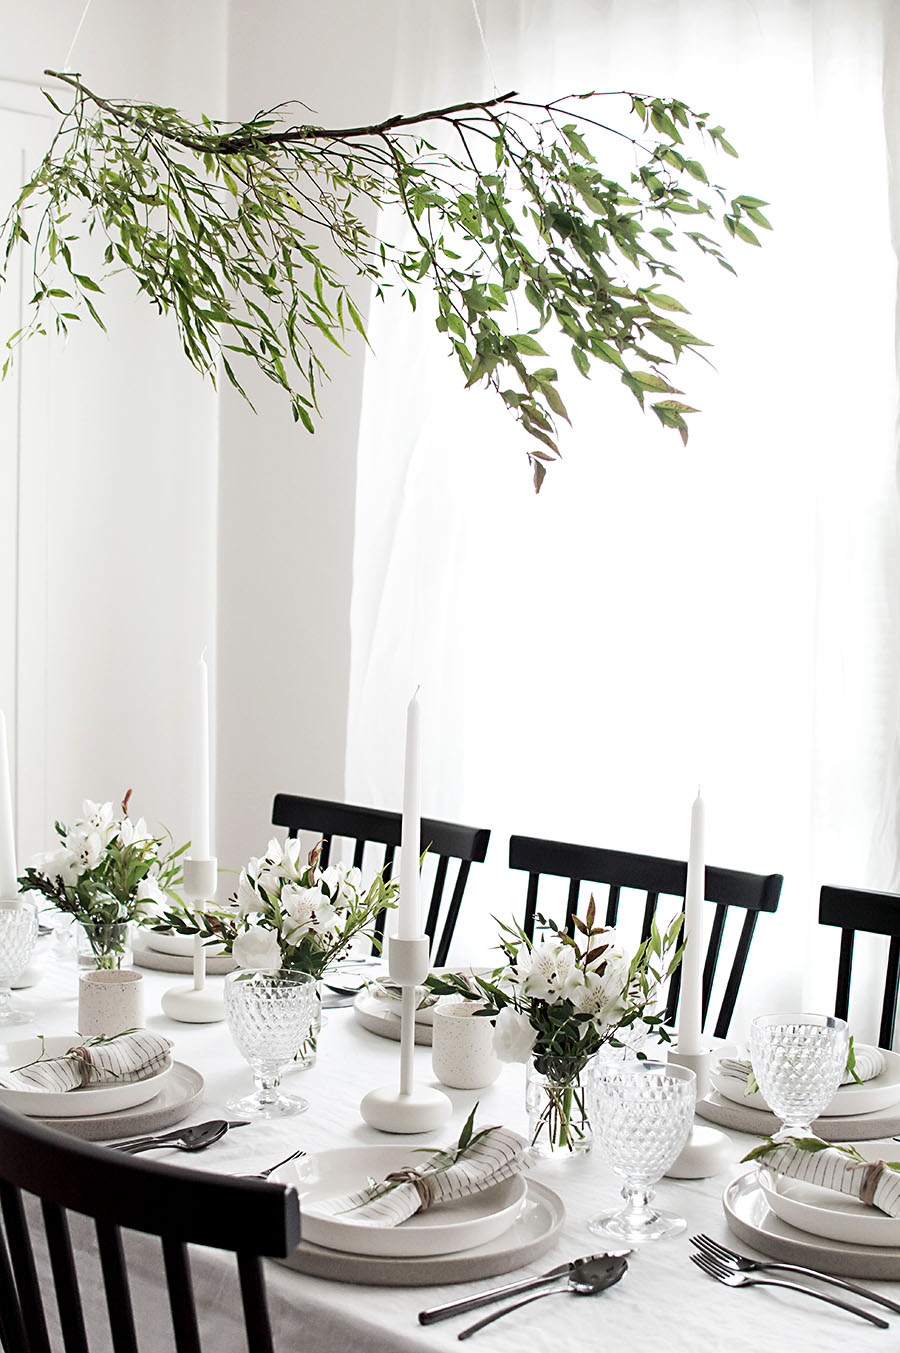 5 tips to set a simple and modern tablescape homey oh my - Modern christmas table settings ideas ...